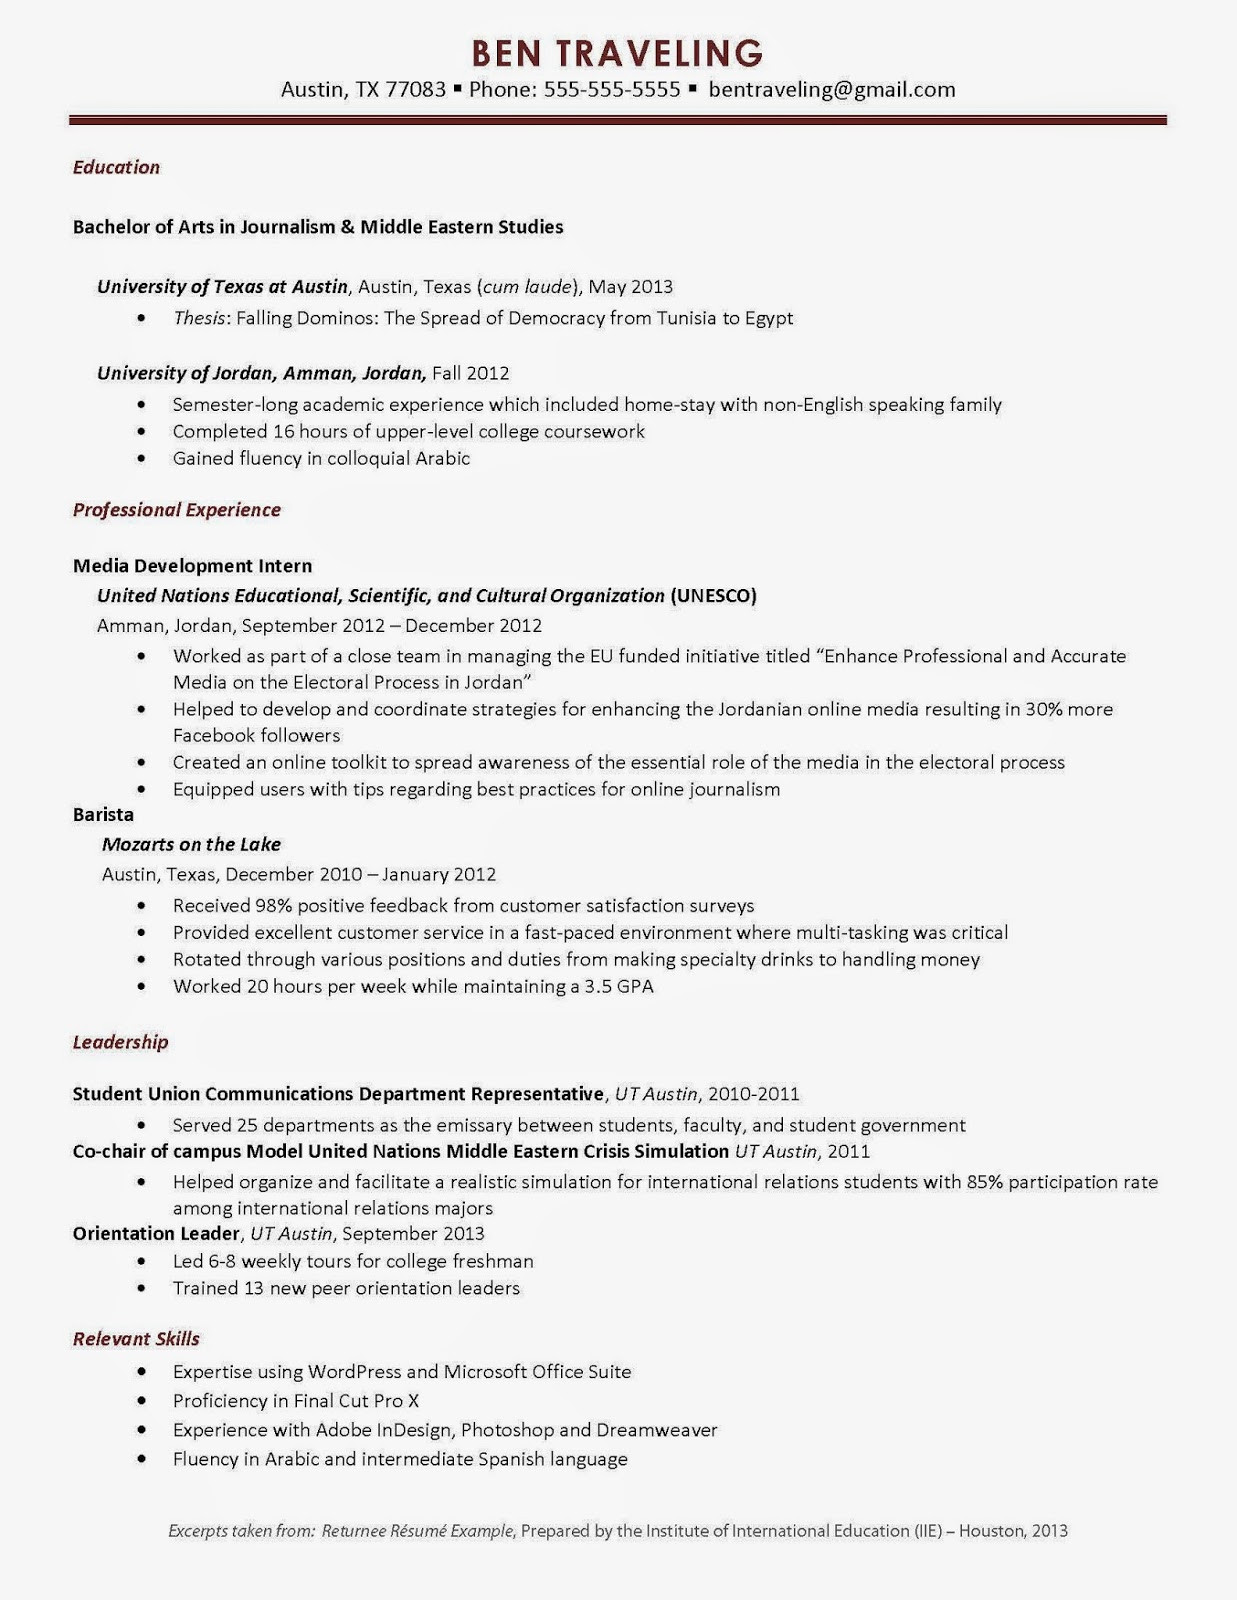 Sample Resume for Study Abroad Application University Of Arkansas Fice Of Study Abroad How Study